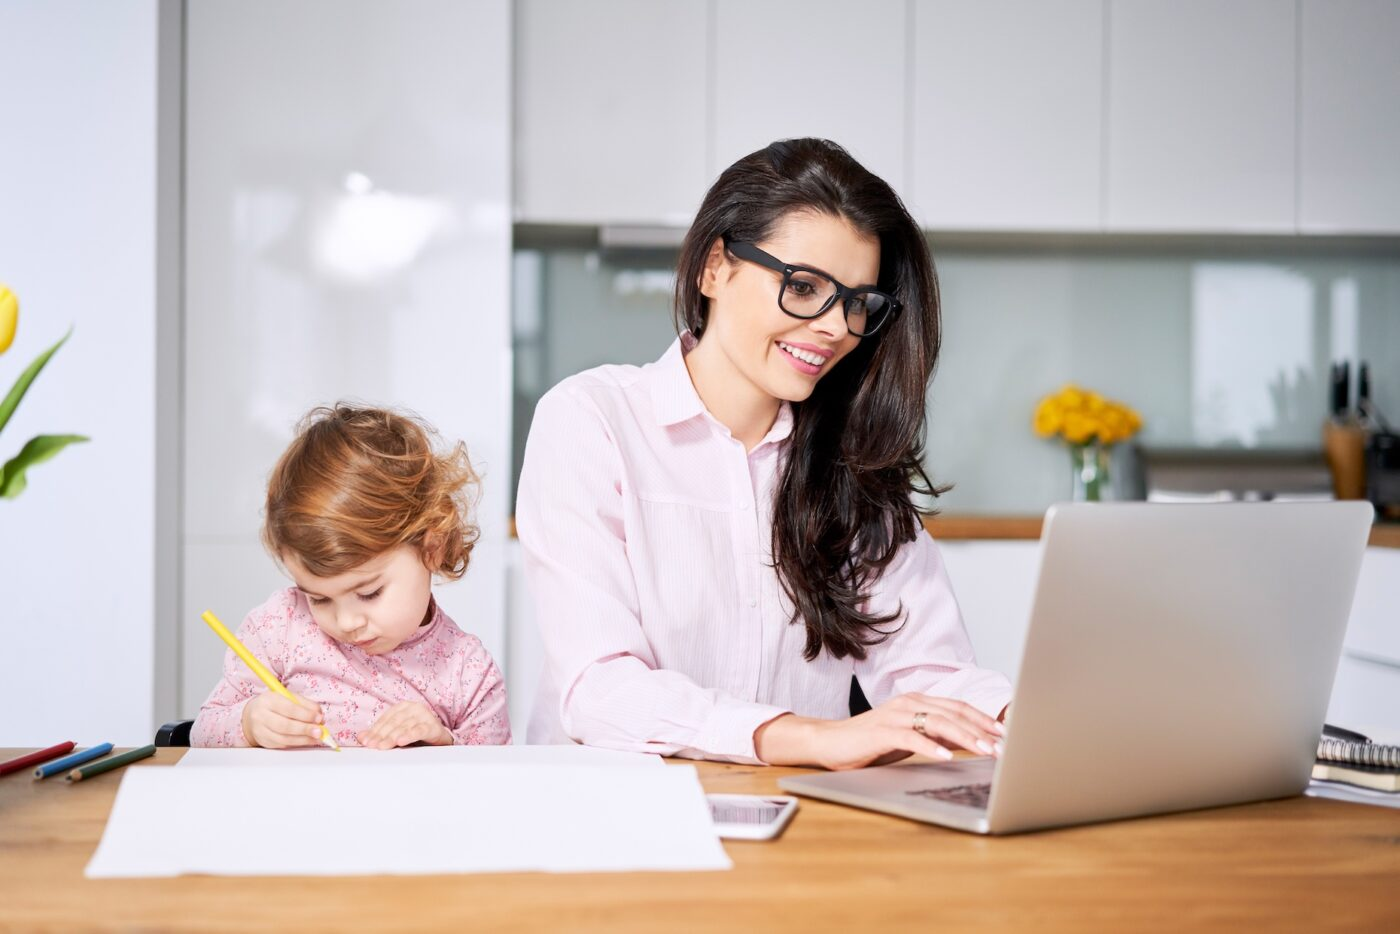 How a real estate intranet makes working from home easier